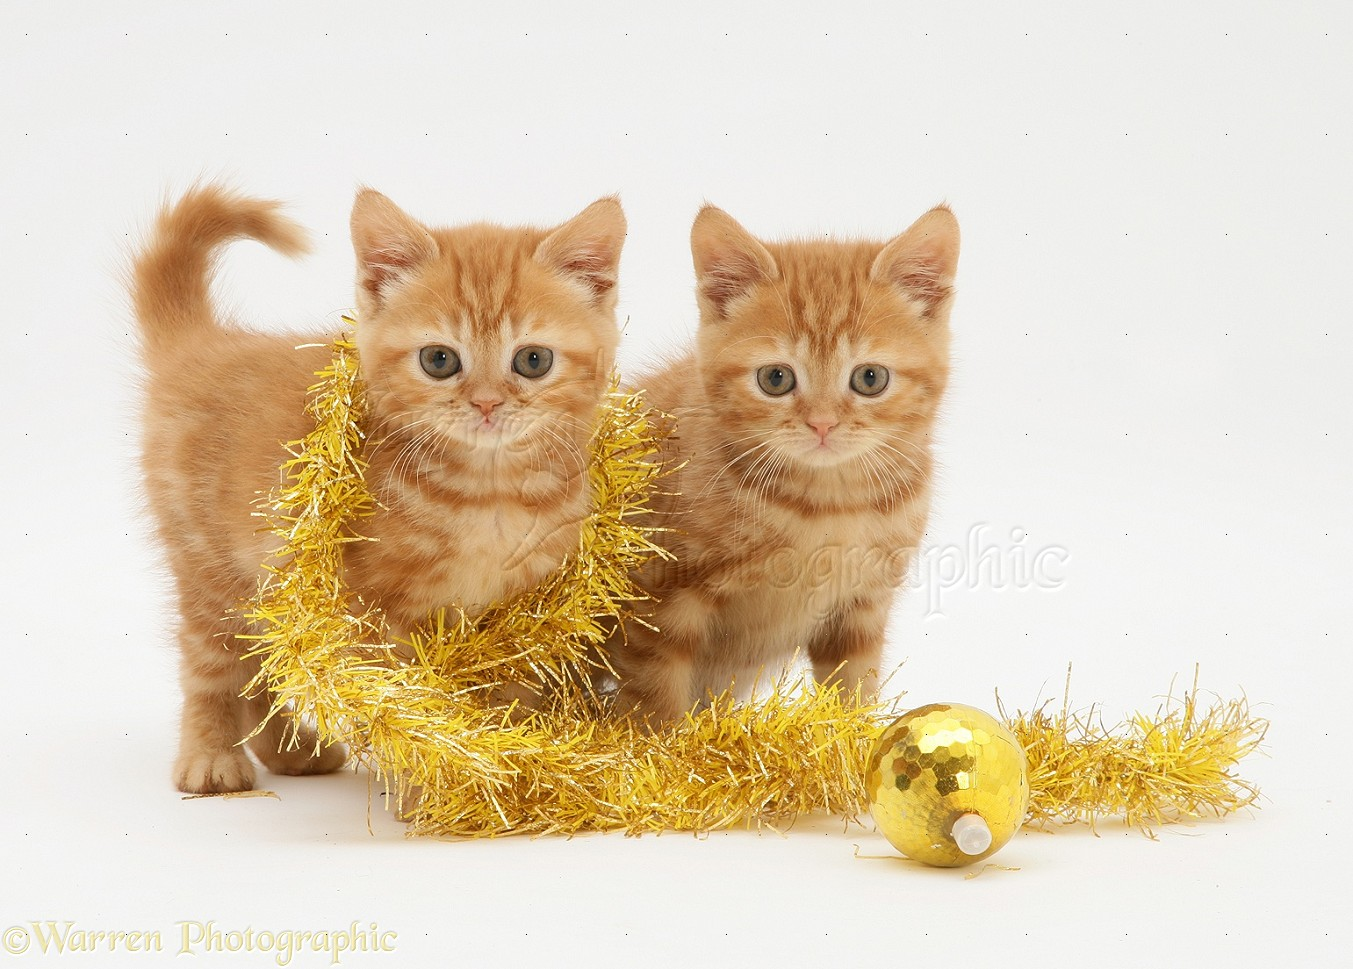 20078-Red-tabby-kittens-with-tinsel-and-